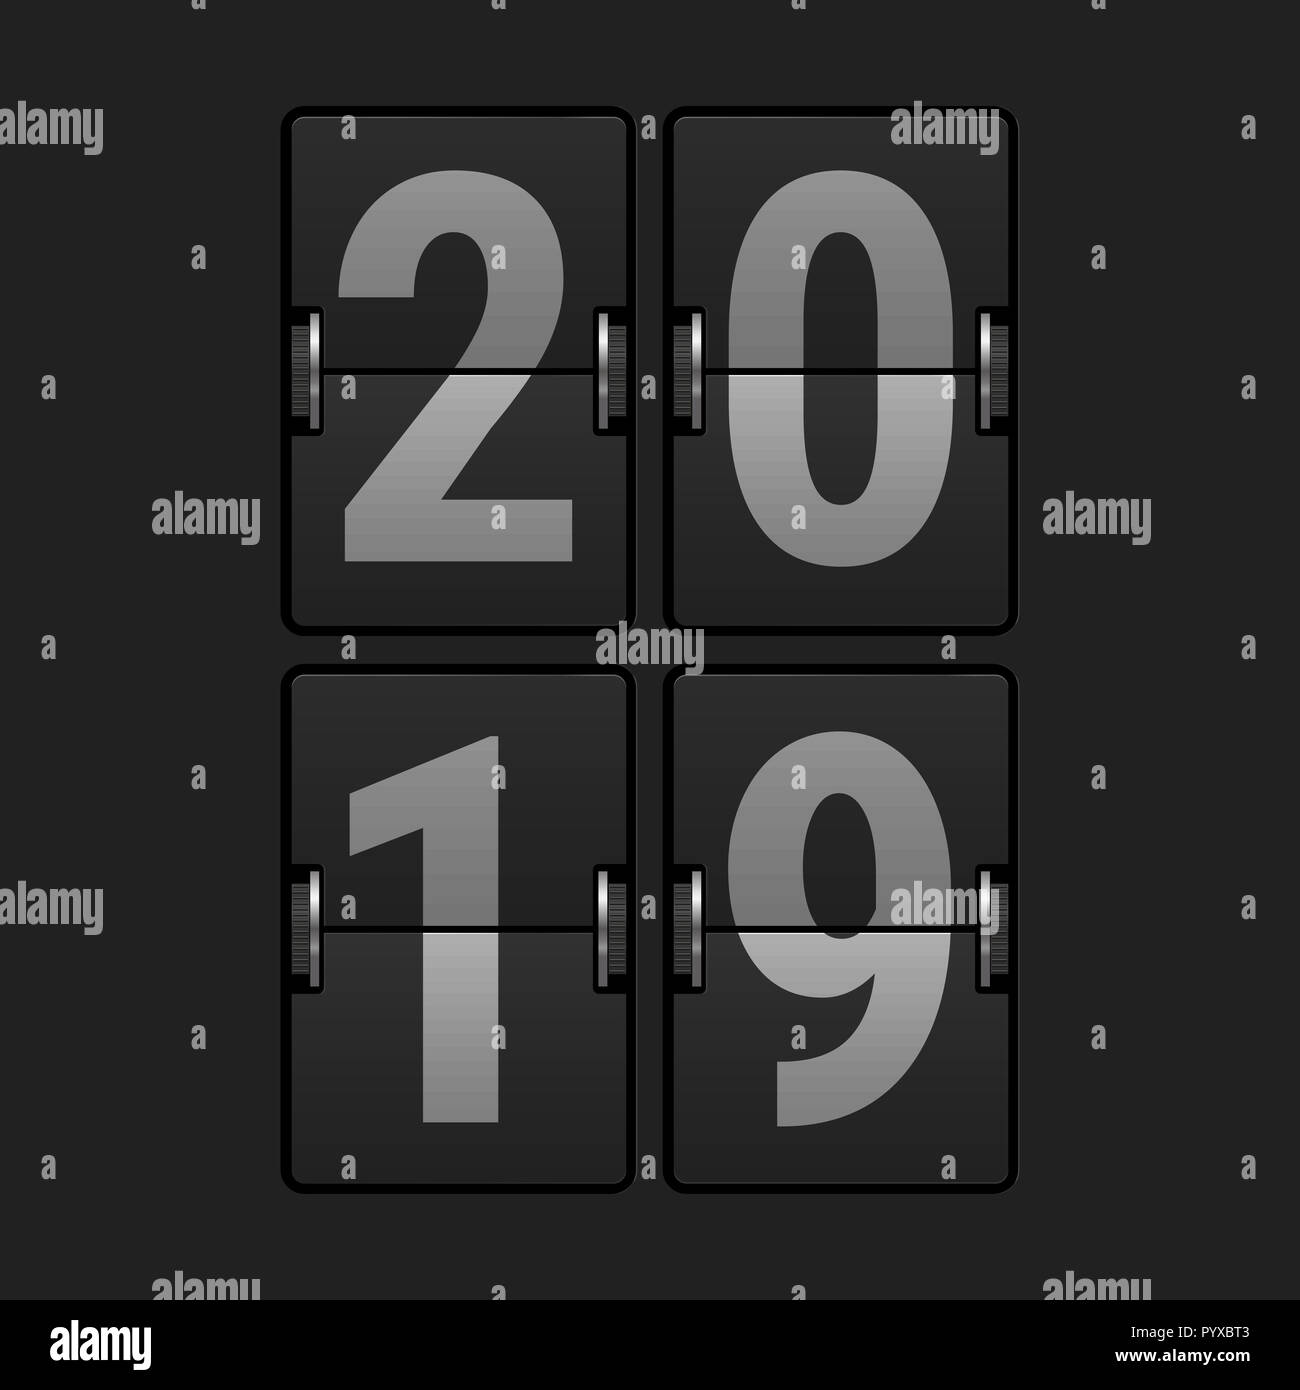 2019 Numbers Airport Display. Christmas Greeting Card Template. Merry Christmas, Happy New Year Design Elements. Resource for Creating Postcards, Cale - Stock Image